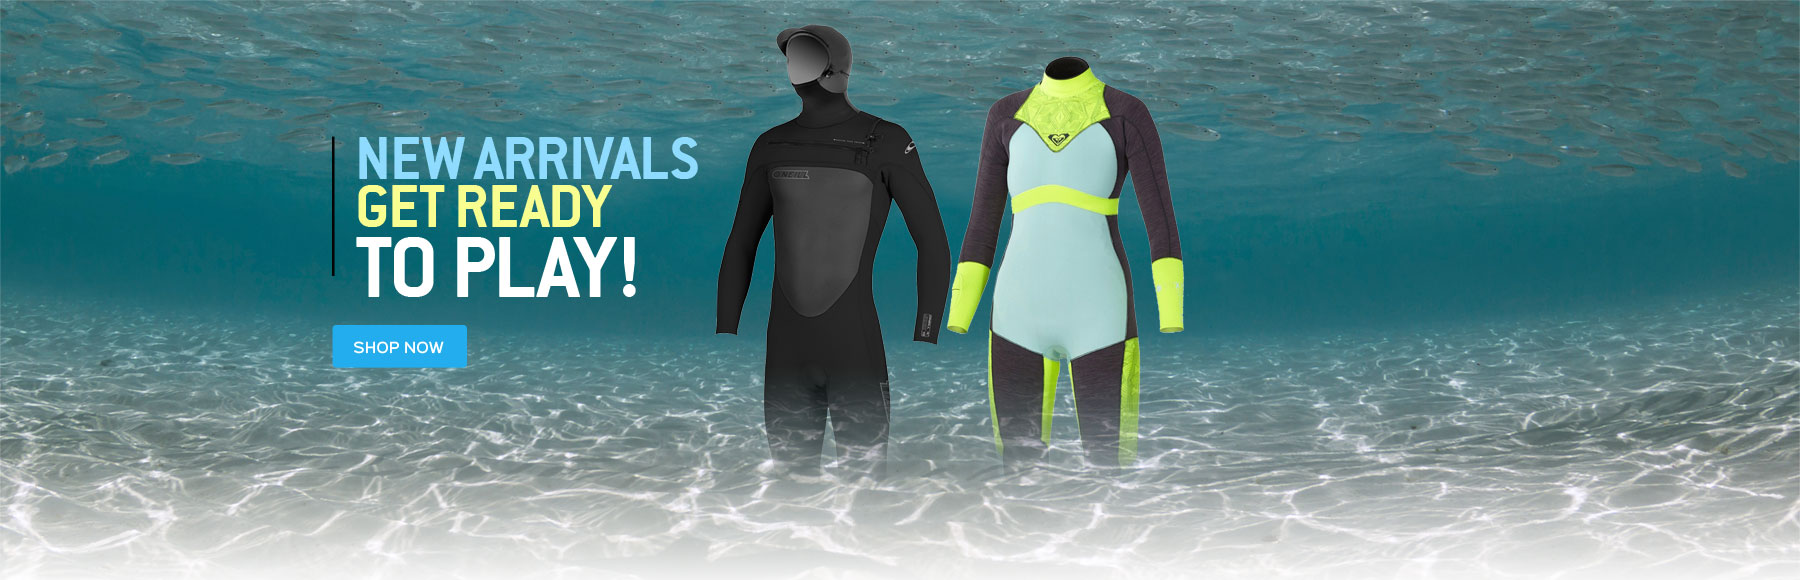 Wetsuit Surfing Diving Triathlon New Arrivals